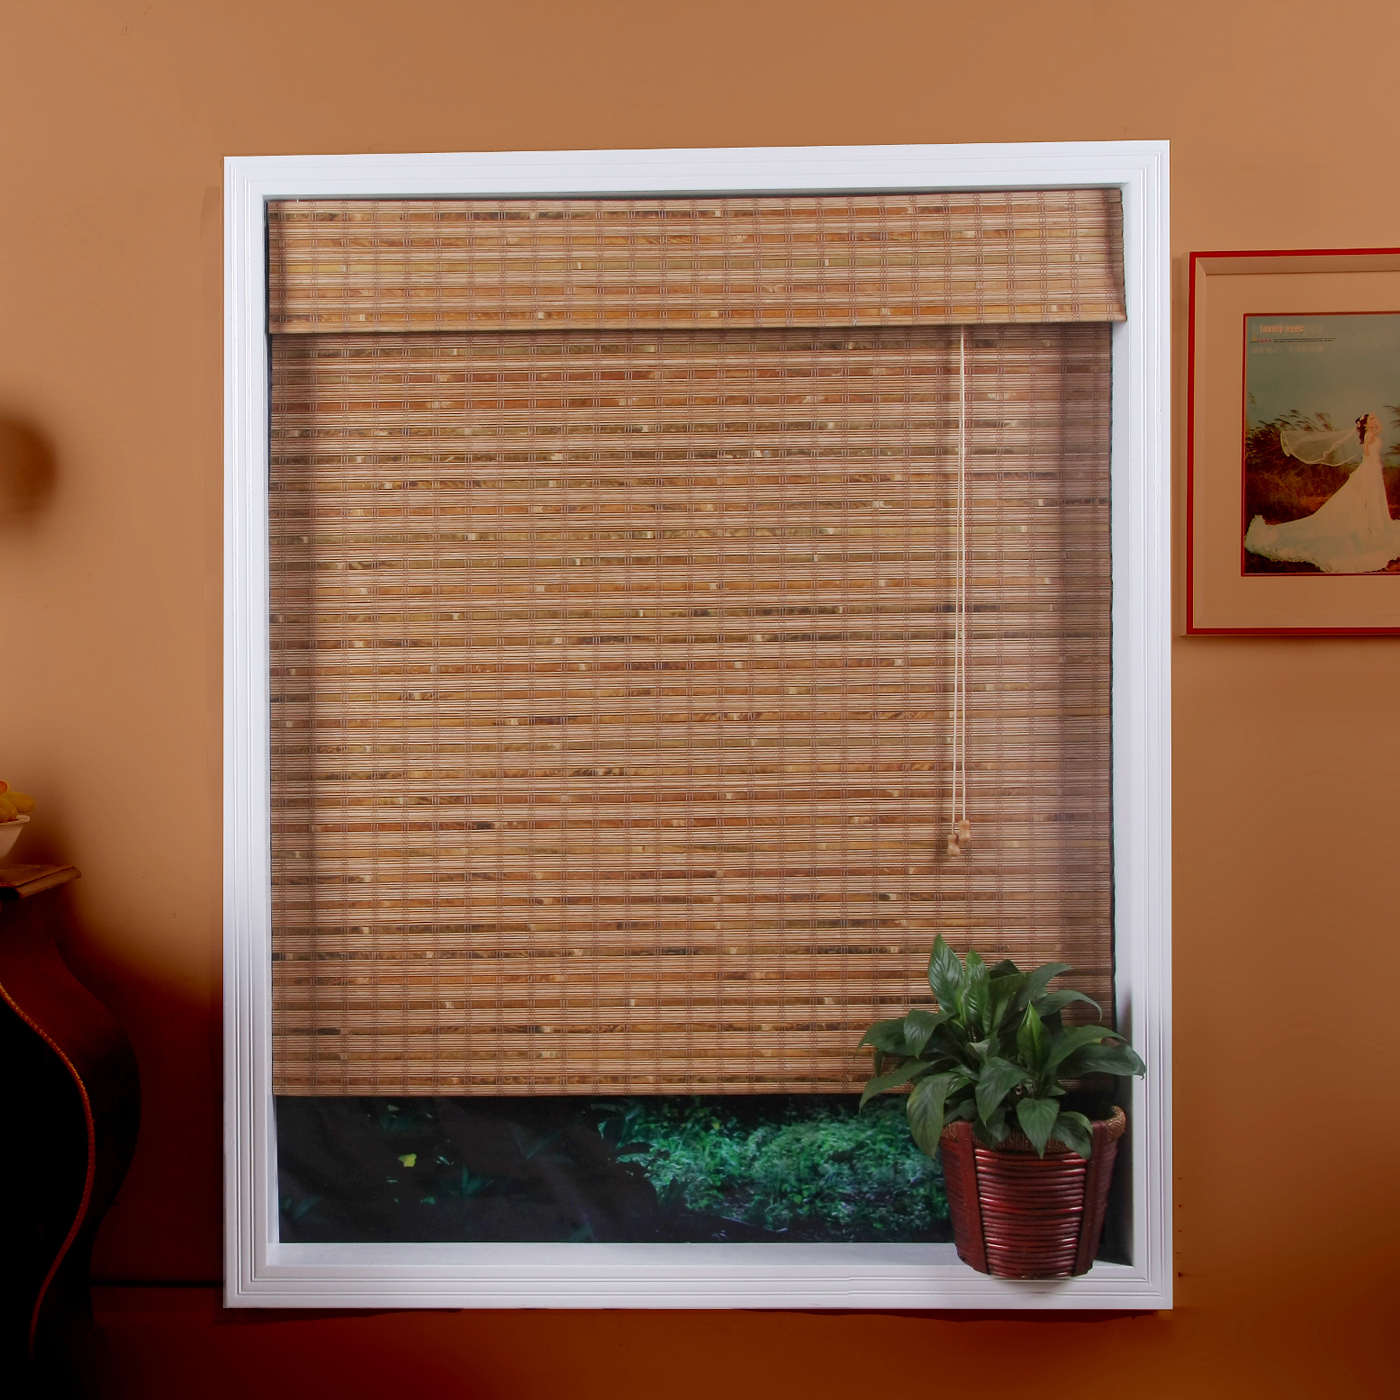 Pleated Shades Lowes | Lowes Shades | Room Darkening Shades Lowes